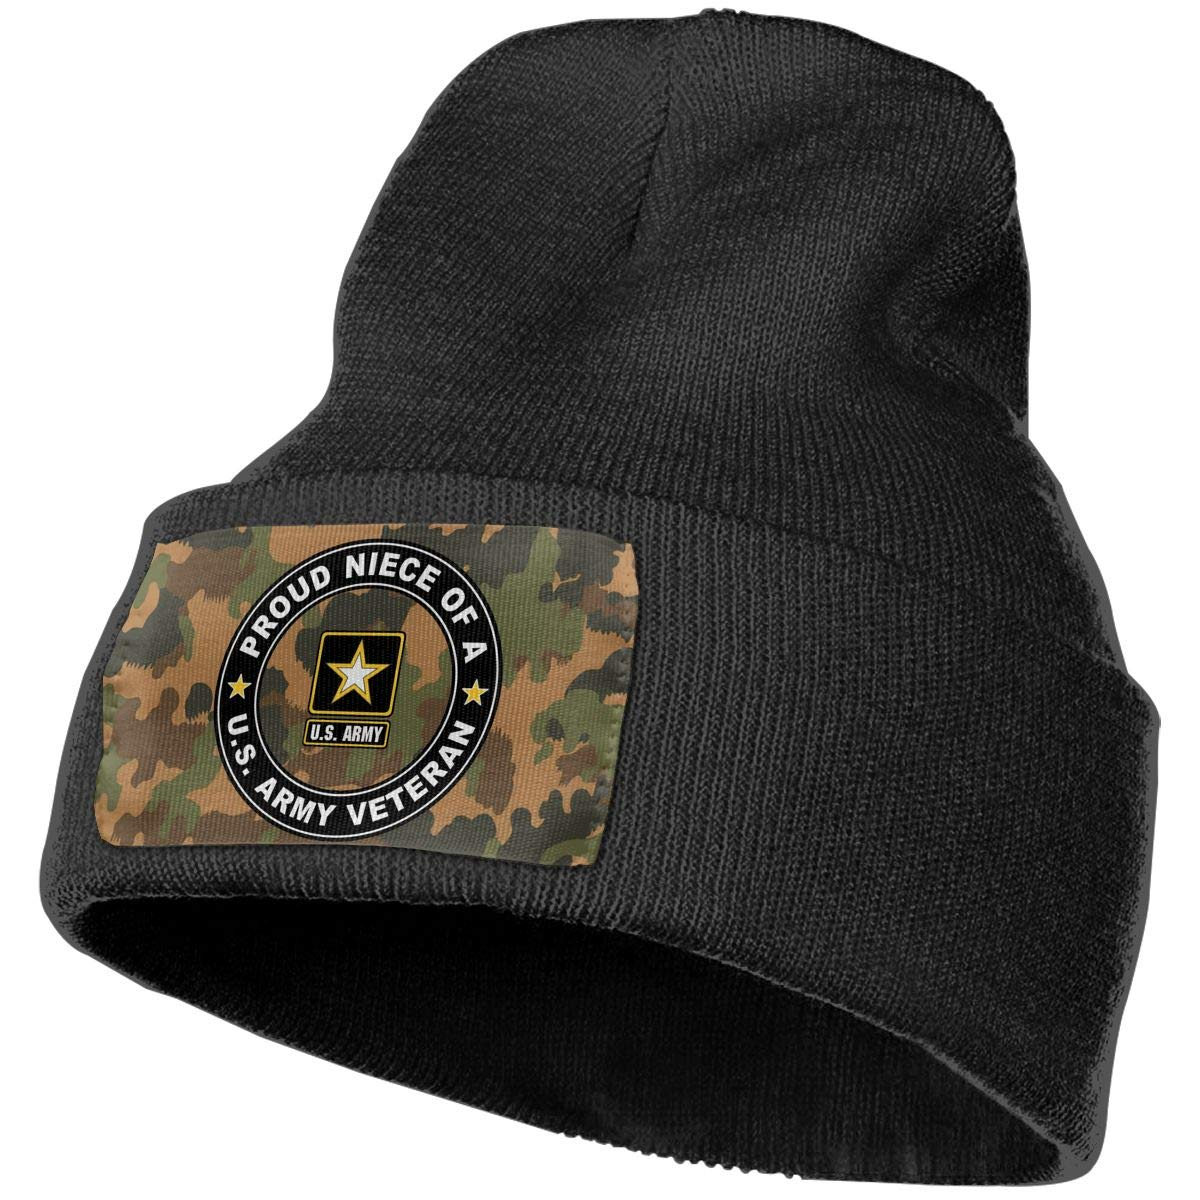 U.S Army Veteran Proud Niece Men/&Women Warm Winter Knit Plain Beanie Hat Skull Cap Acrylic Knit Cuff Hat